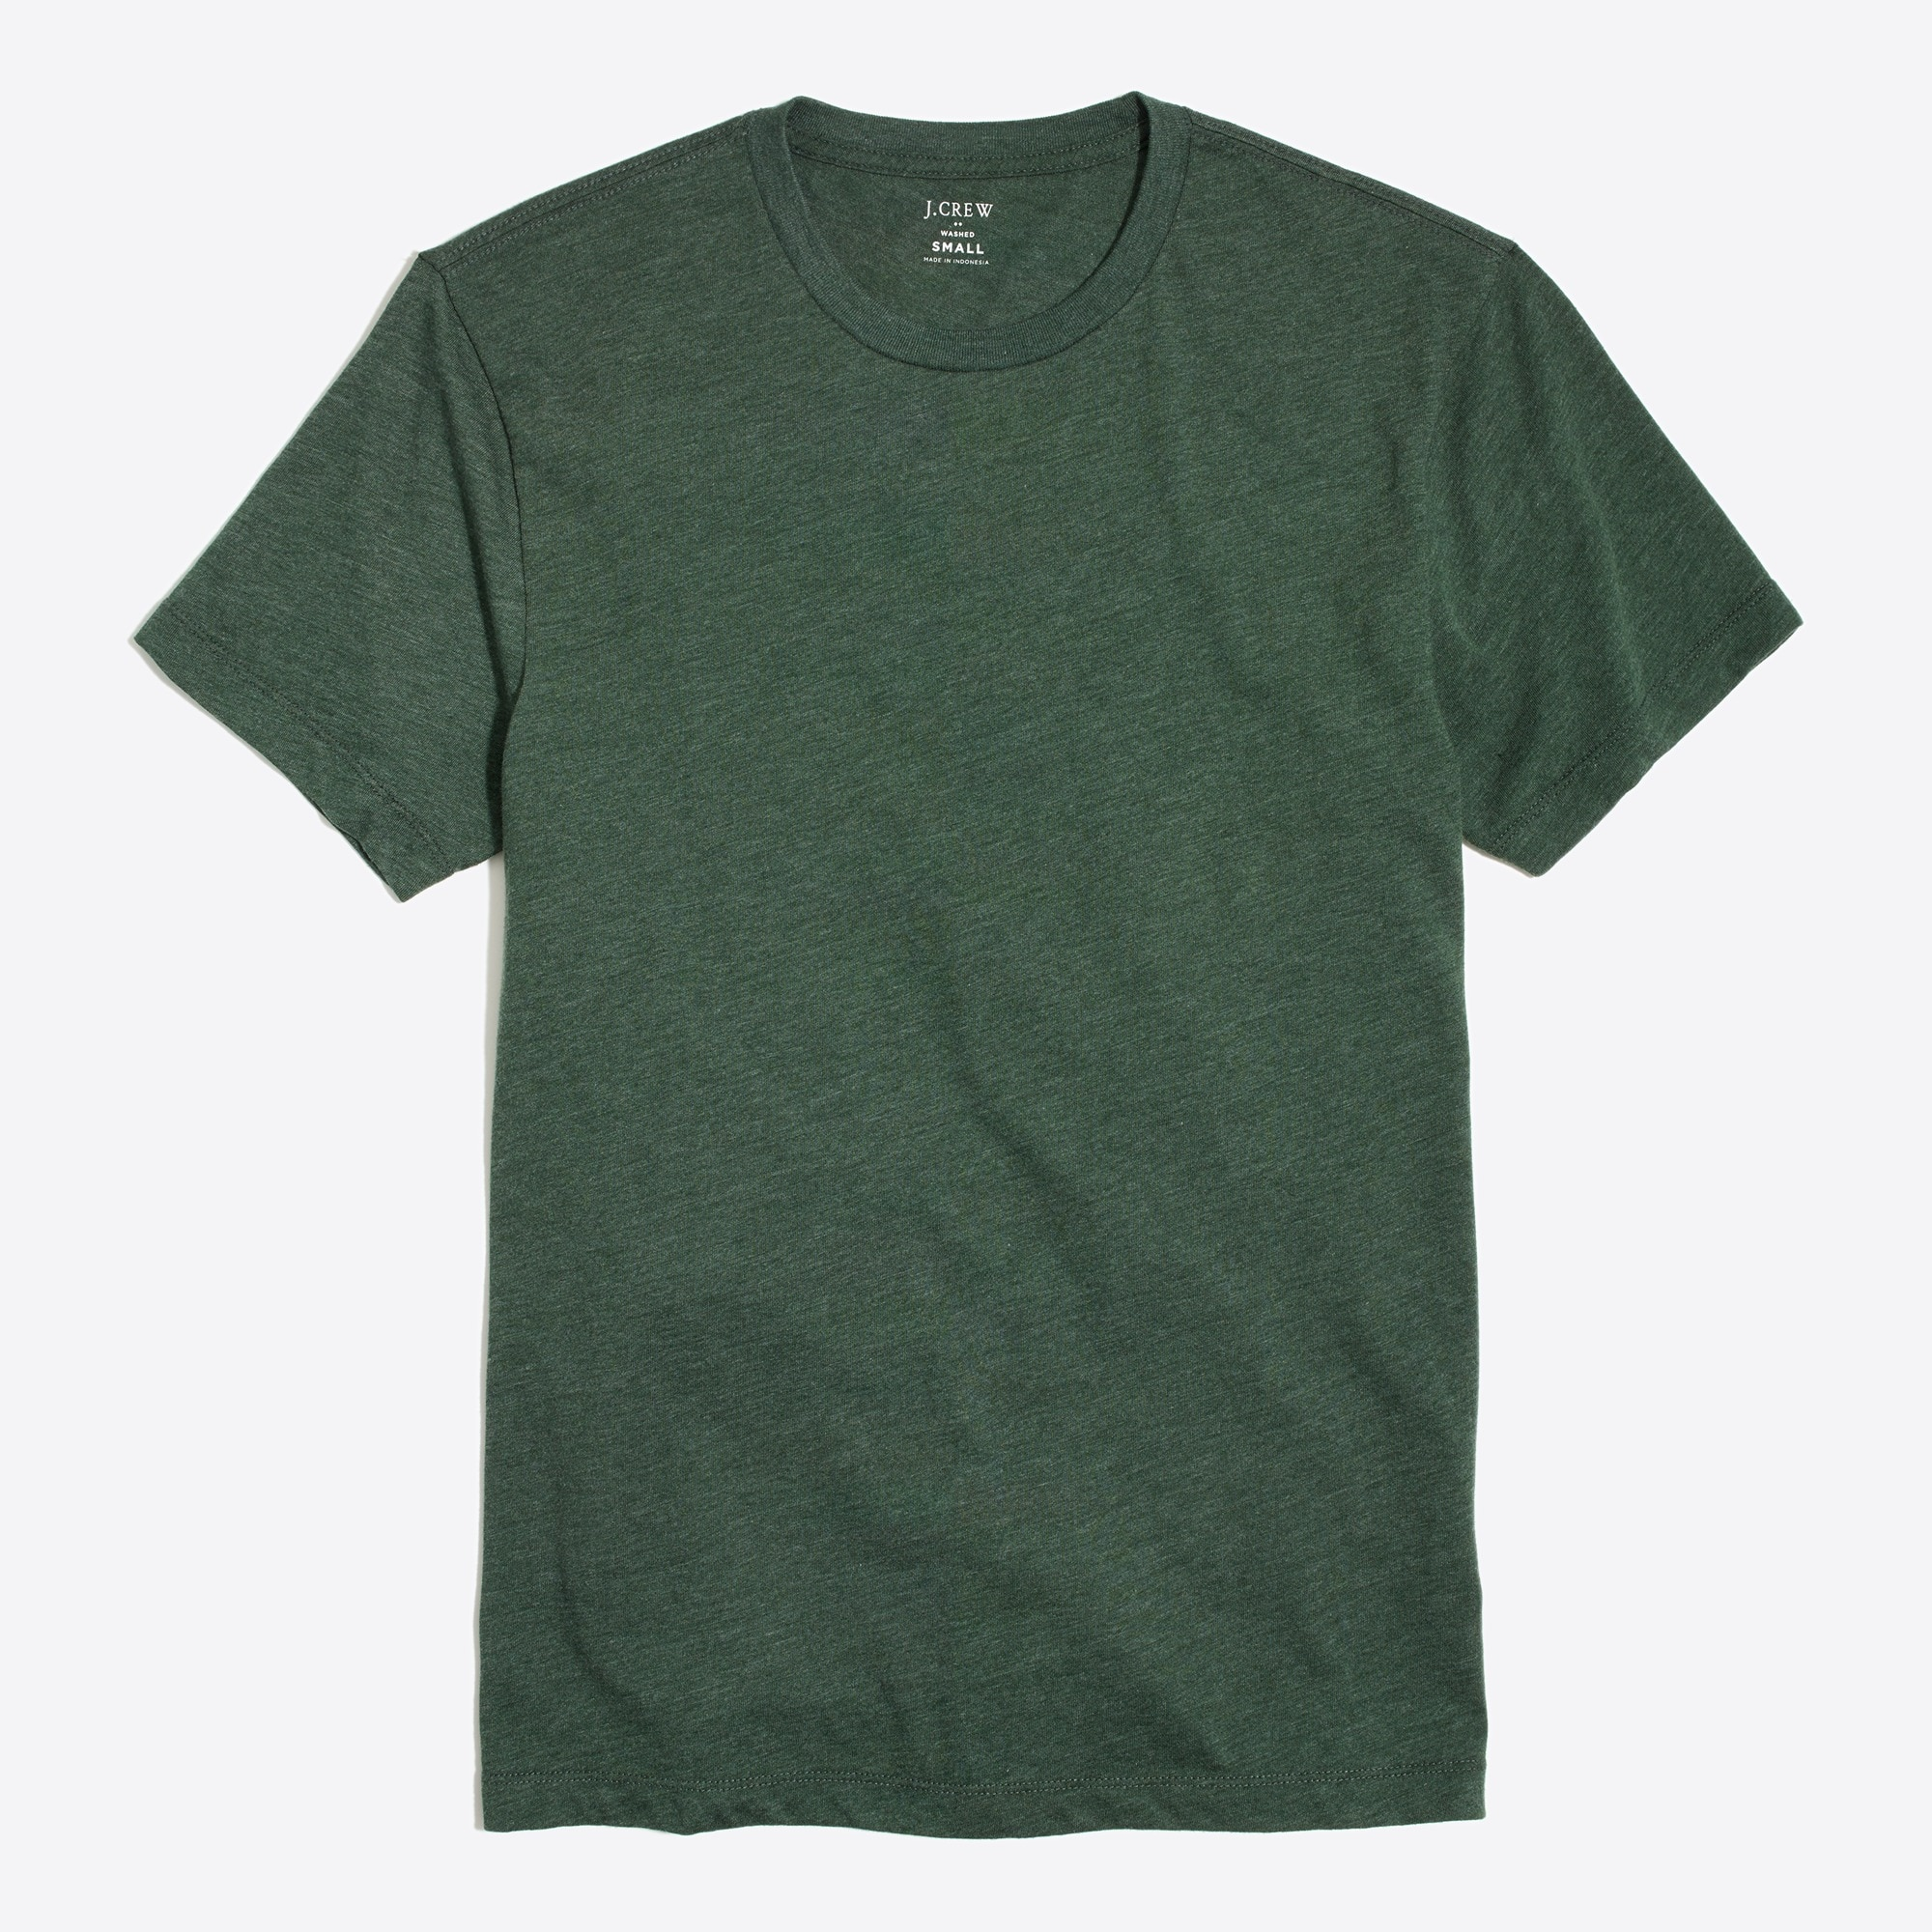 Image 1 for J.Crew Mercantile heathered Broken-in T-shirt